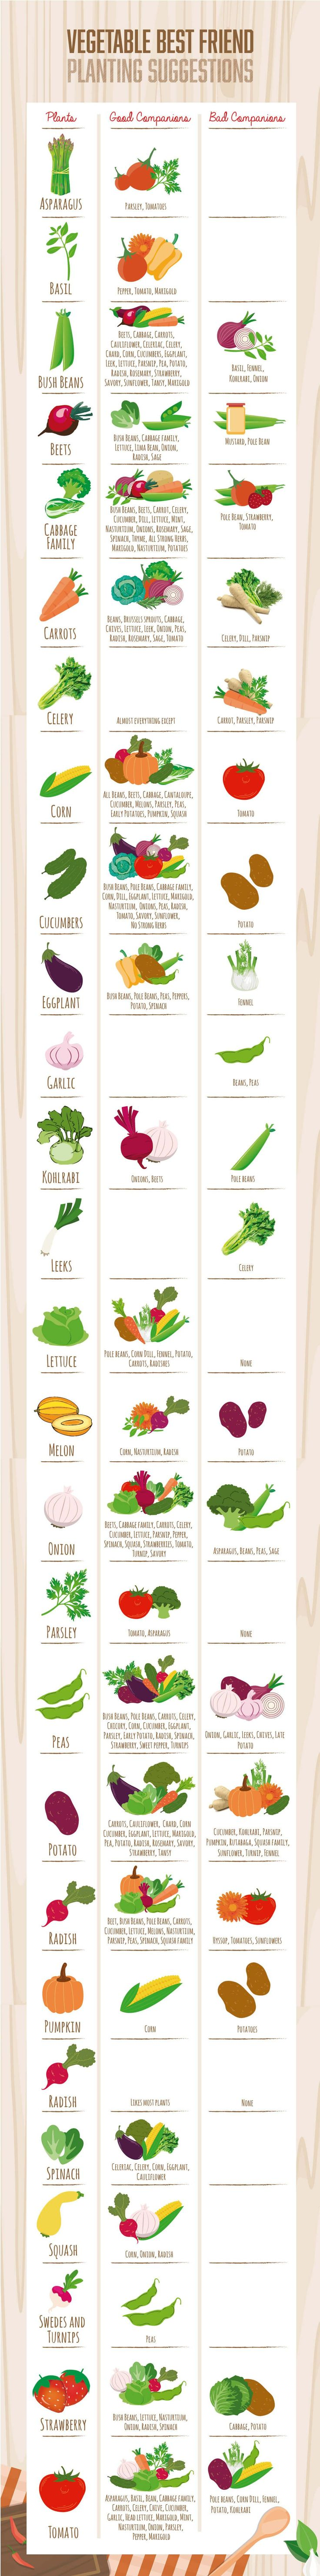 Visual Companion Planting Chart (Guide) - Companion Planting -- just not for helping your plants make friends, but to help your plants grow to the best of their ability by having great neighbors to help them along! Give your garden plants new best friends!